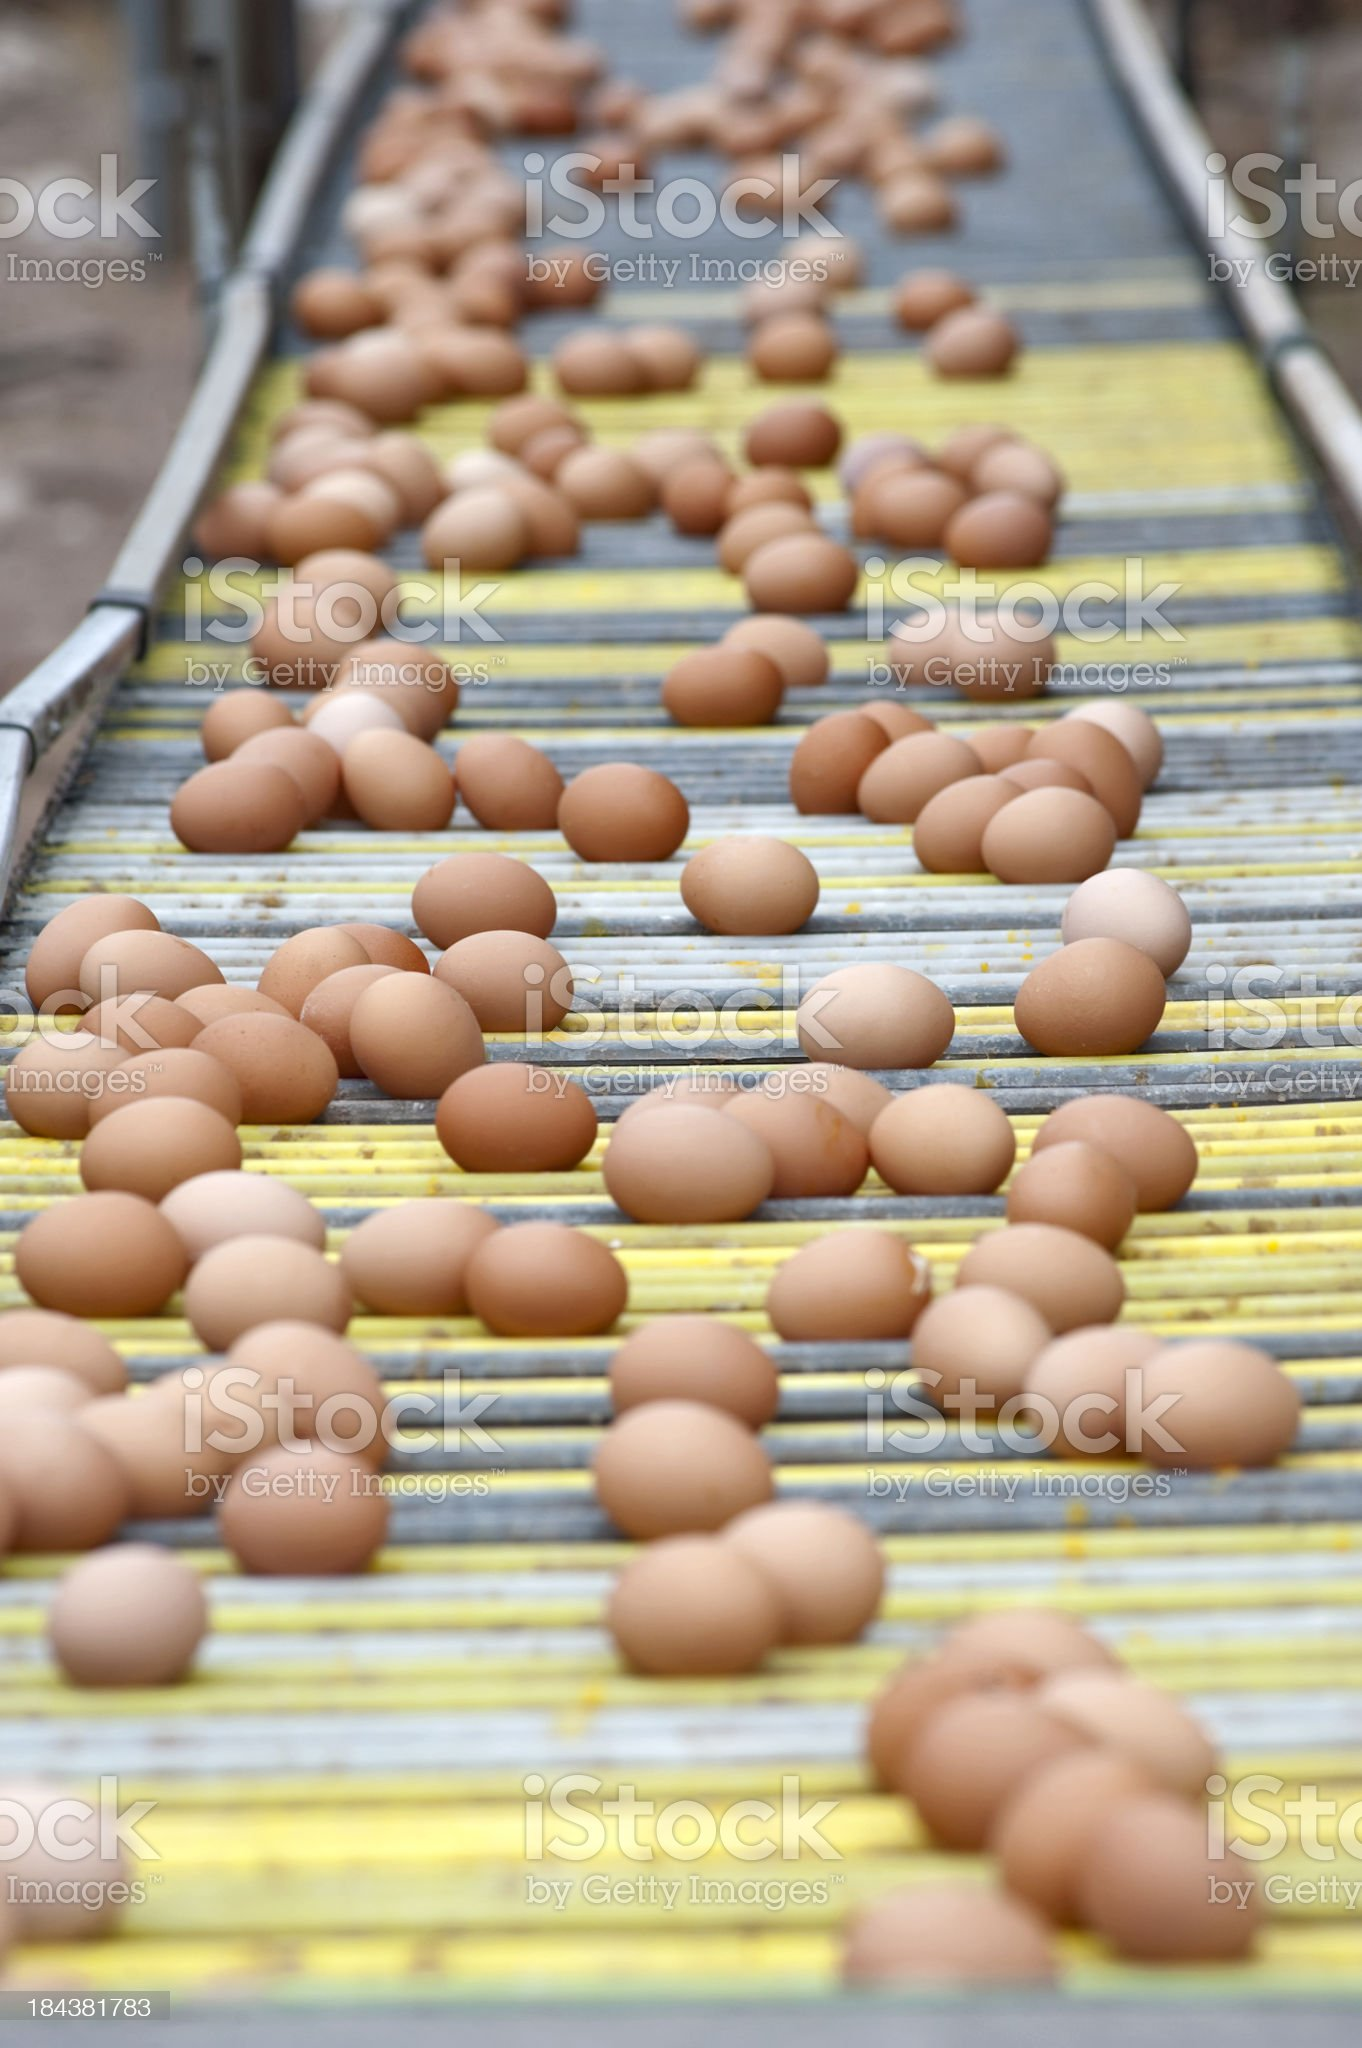 Eggs production line. royalty-free stock photo